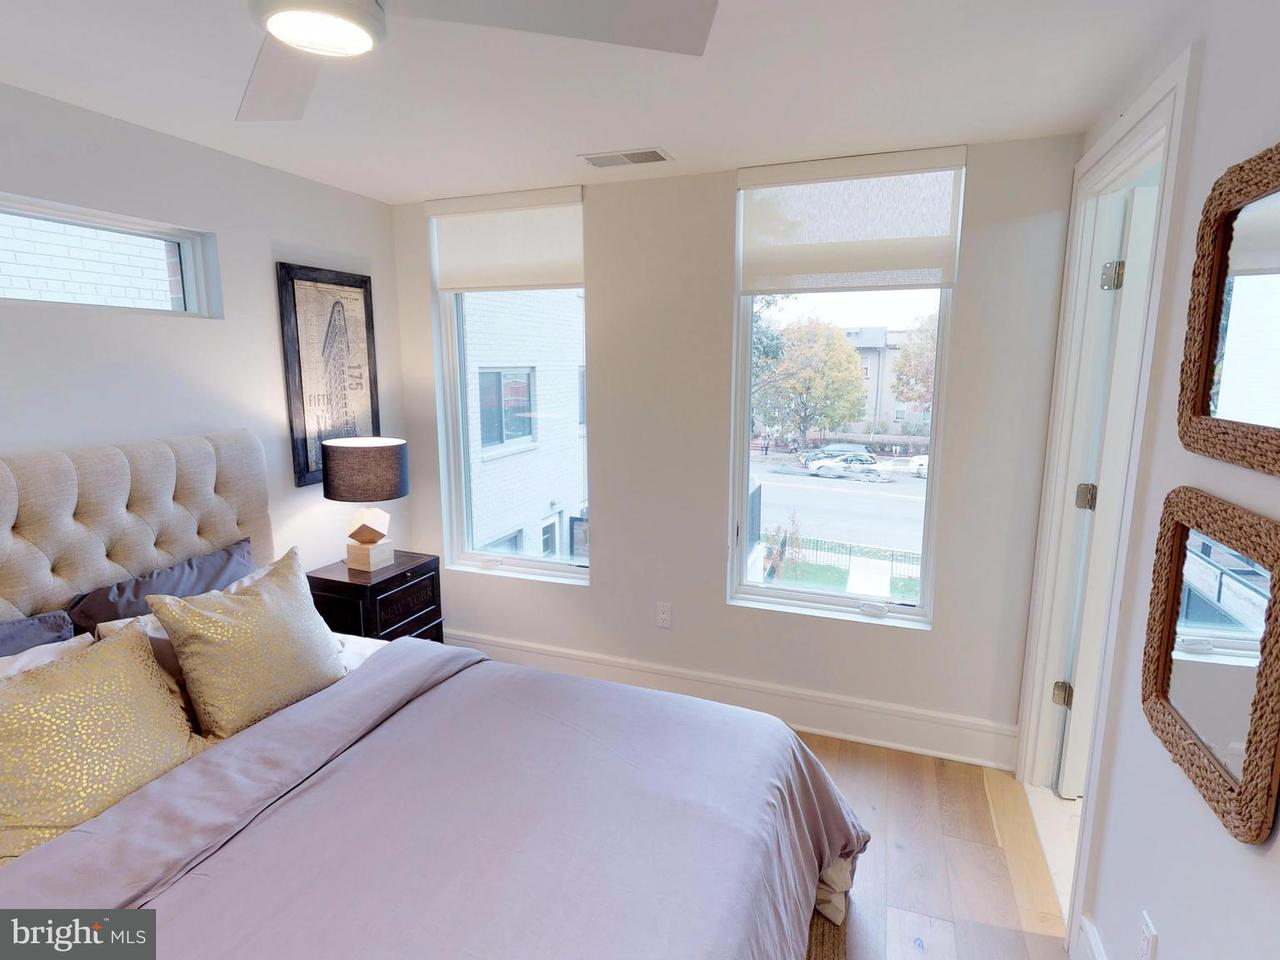 Additional photo for property listing at 3211 Wisconsin Ave Nw #101 3211 Wisconsin Ave Nw #101 Washington, District Of Columbia 20016 United States